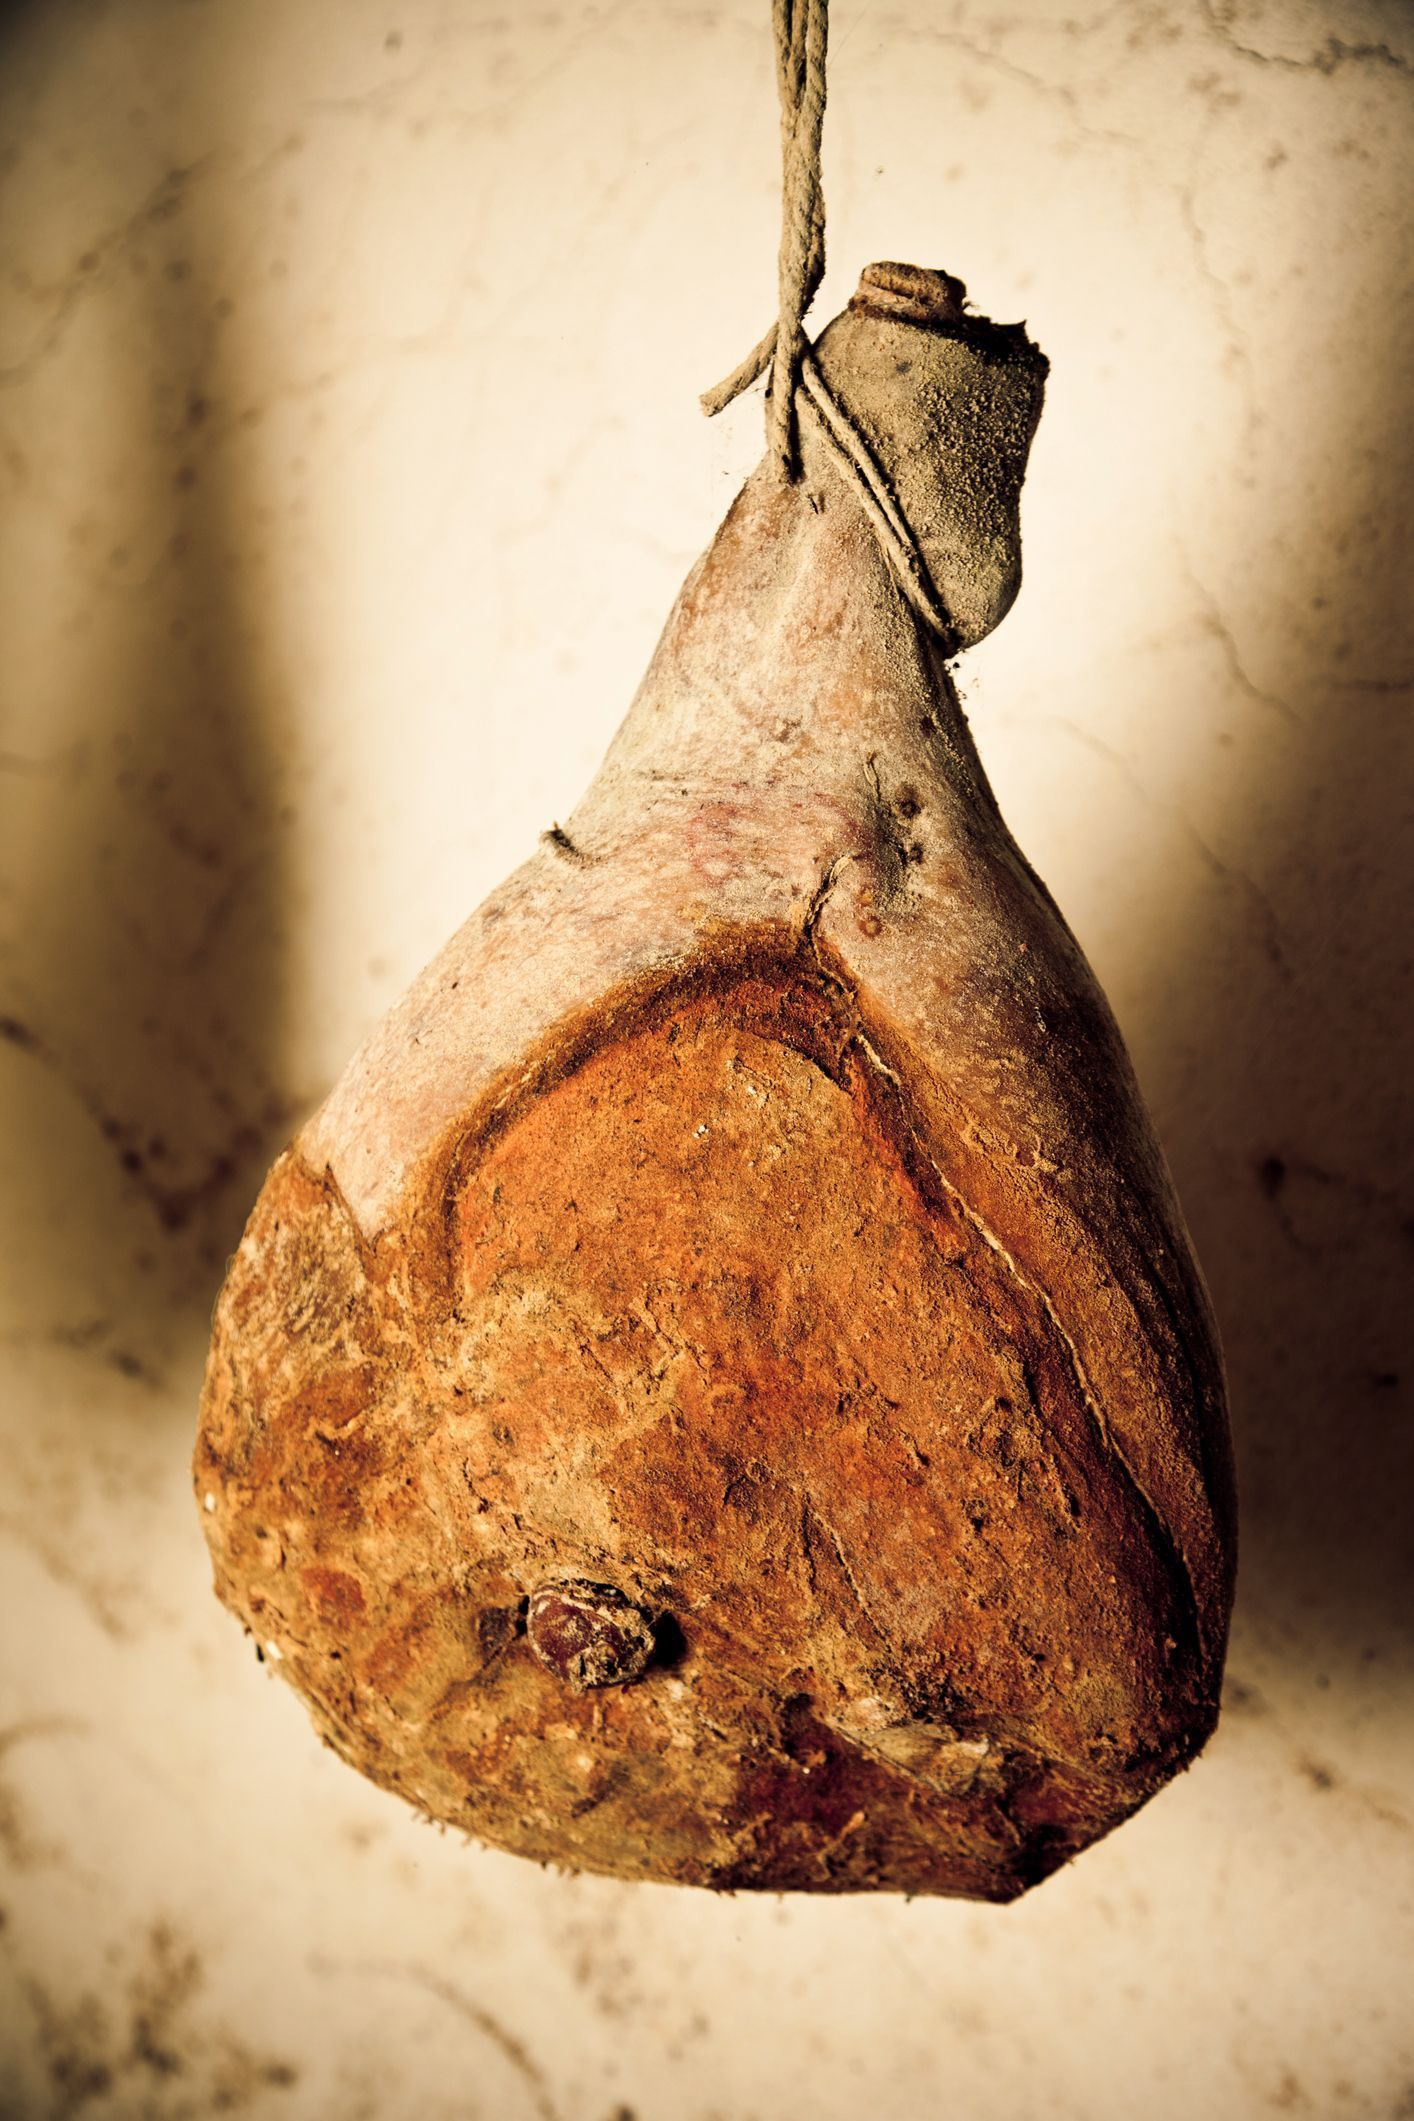 How To Make Tuscan Style Prosciutto At Home Recipe Cured Meat Recipes Cured Meats Smoked Food Recipes